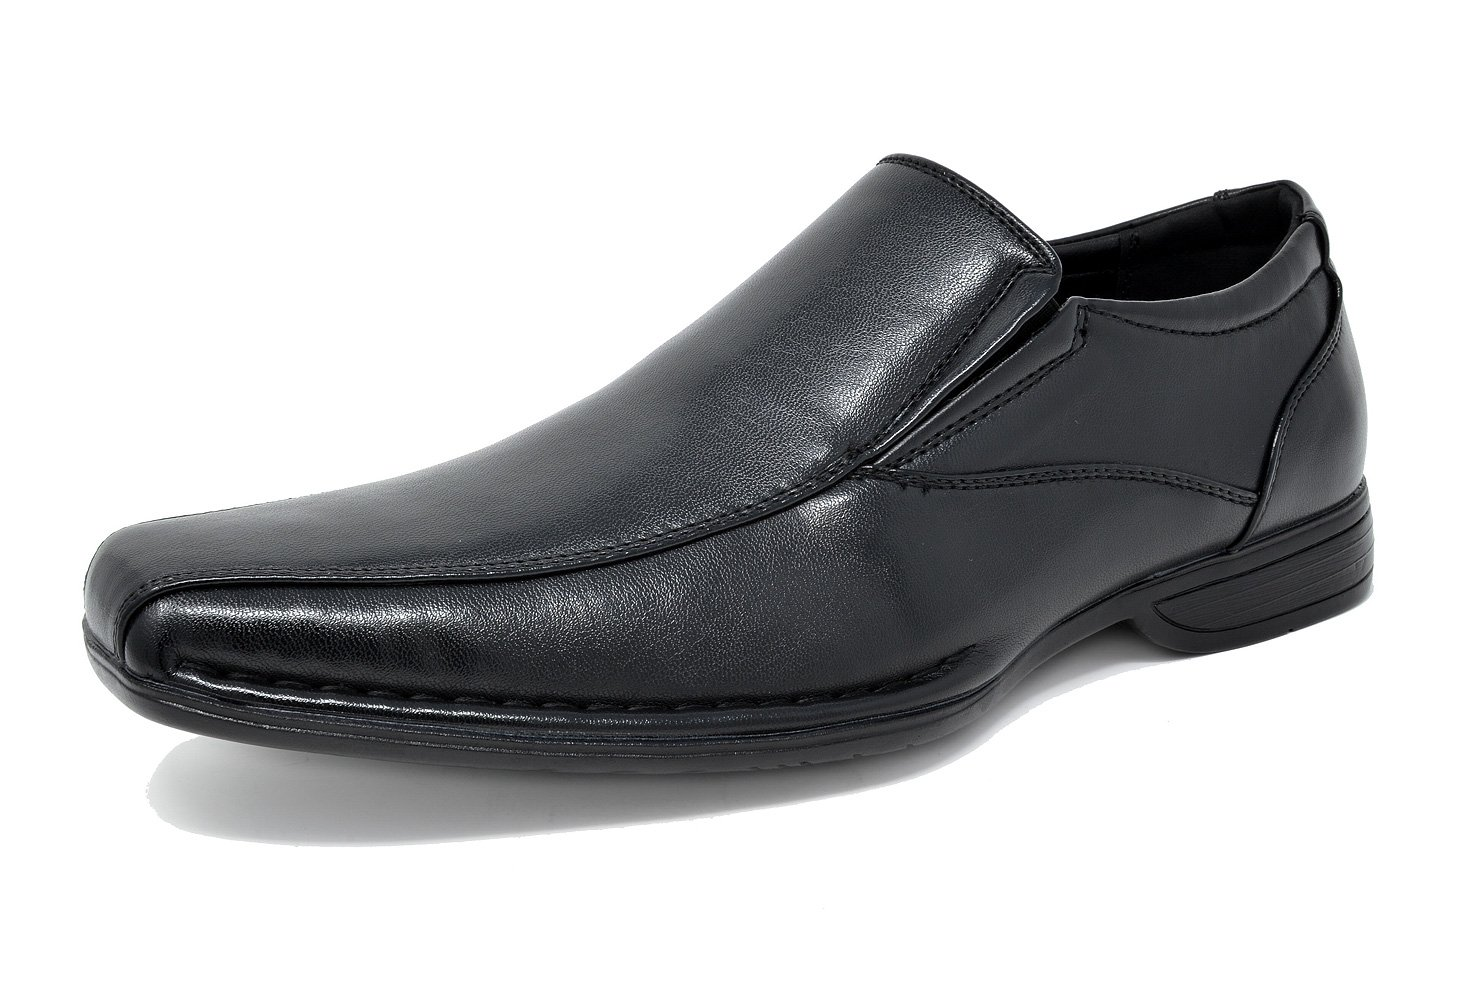 Bruno Marc Men's Giorgio-1 Black Leather Lined Dress Loafers Shoes - 11 M US